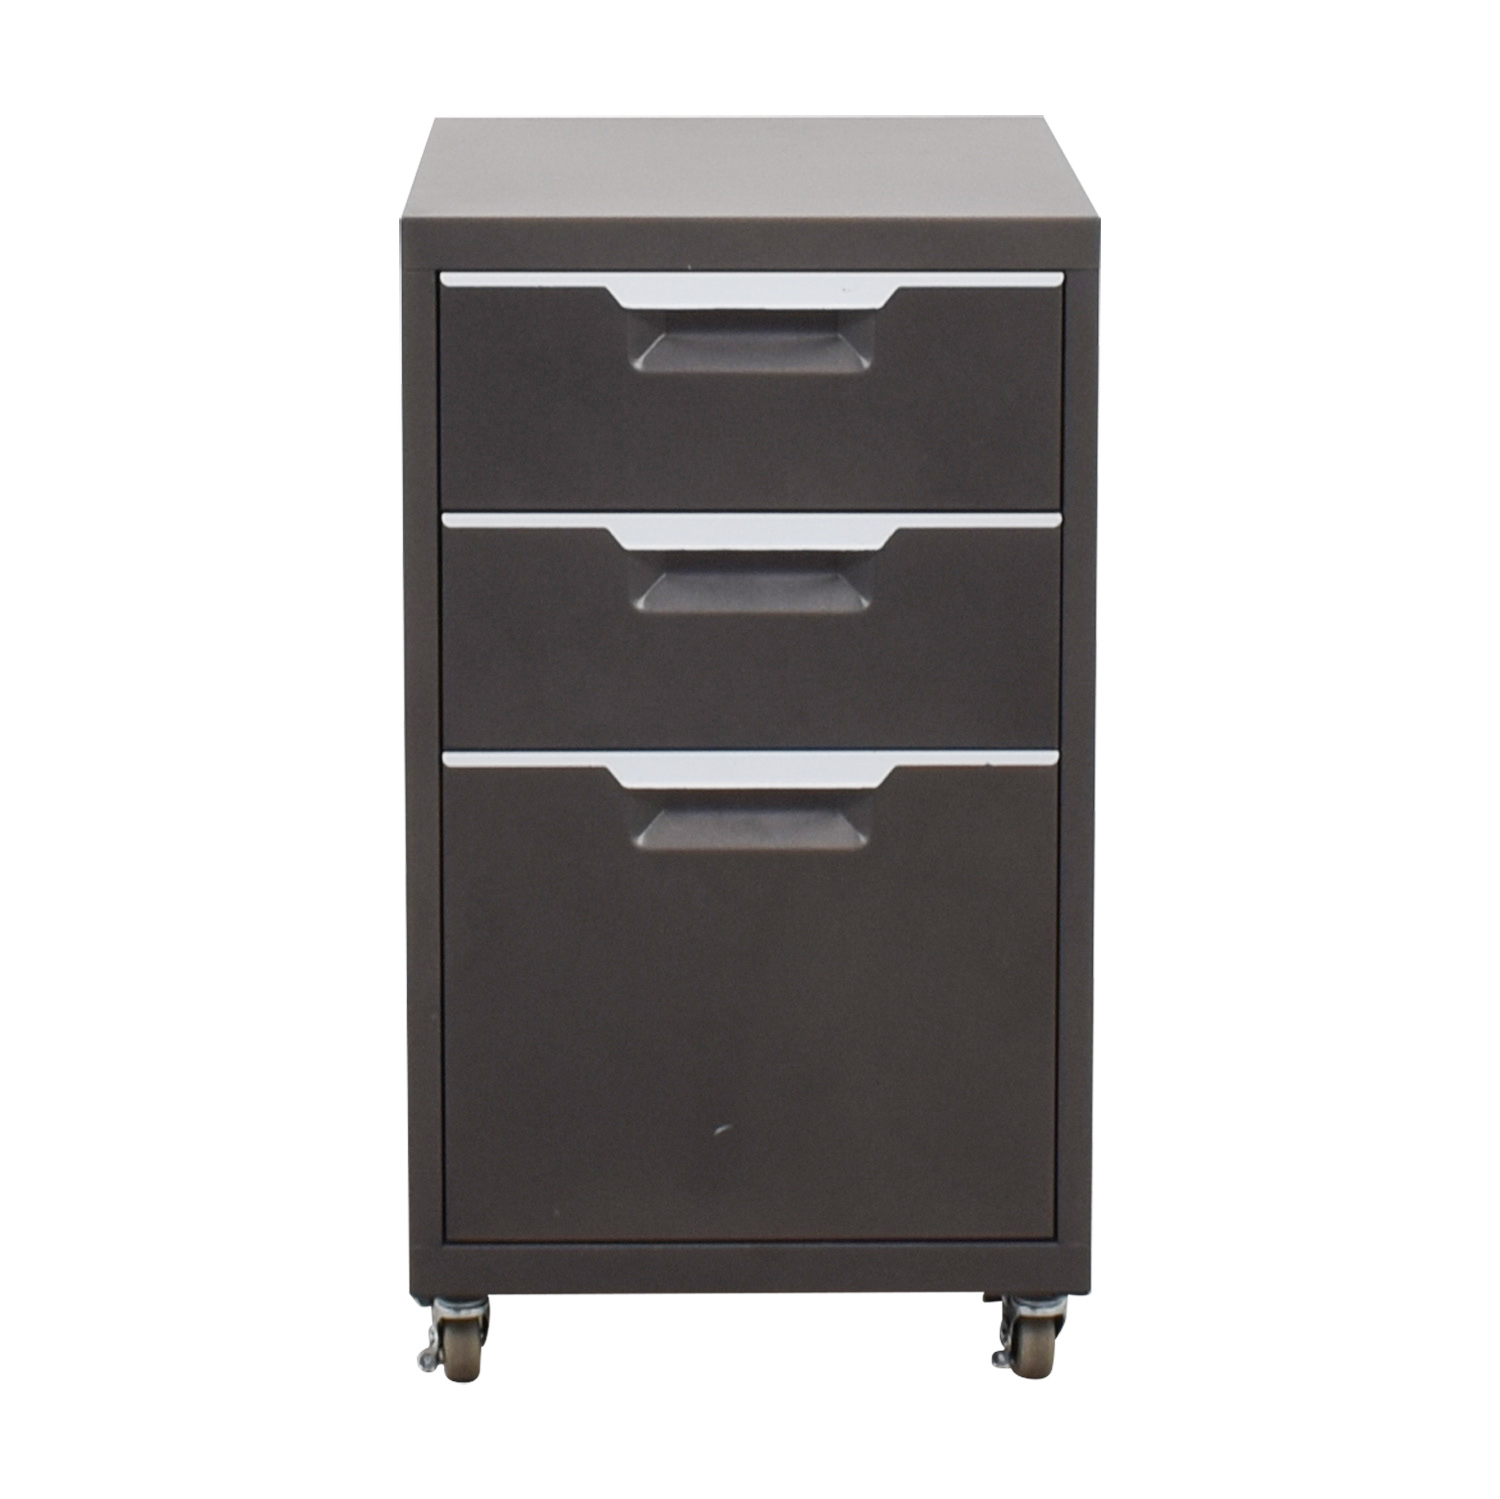 Cb2 File Cabinet Second Hand